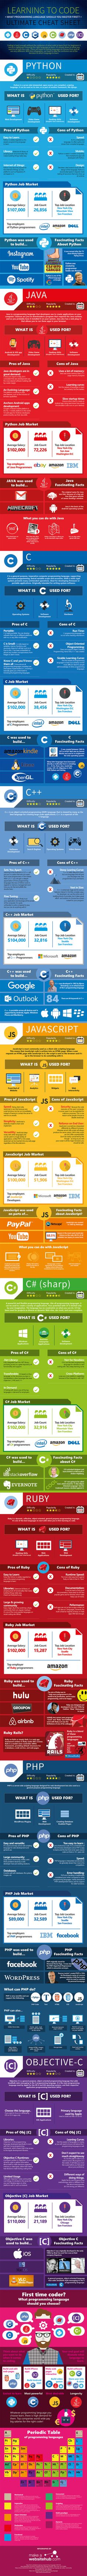 You Learn Python, C, or Ruby to Be a Top Coder? (Infographic) Should You Learn Python, C, or Ruby to Be a Top Coder? Computer Coding, Computer Science, Computer Technology, Computer Engineering, Teaching Technology, Teaching Biology, Data Science, Environmental Science, Life Science